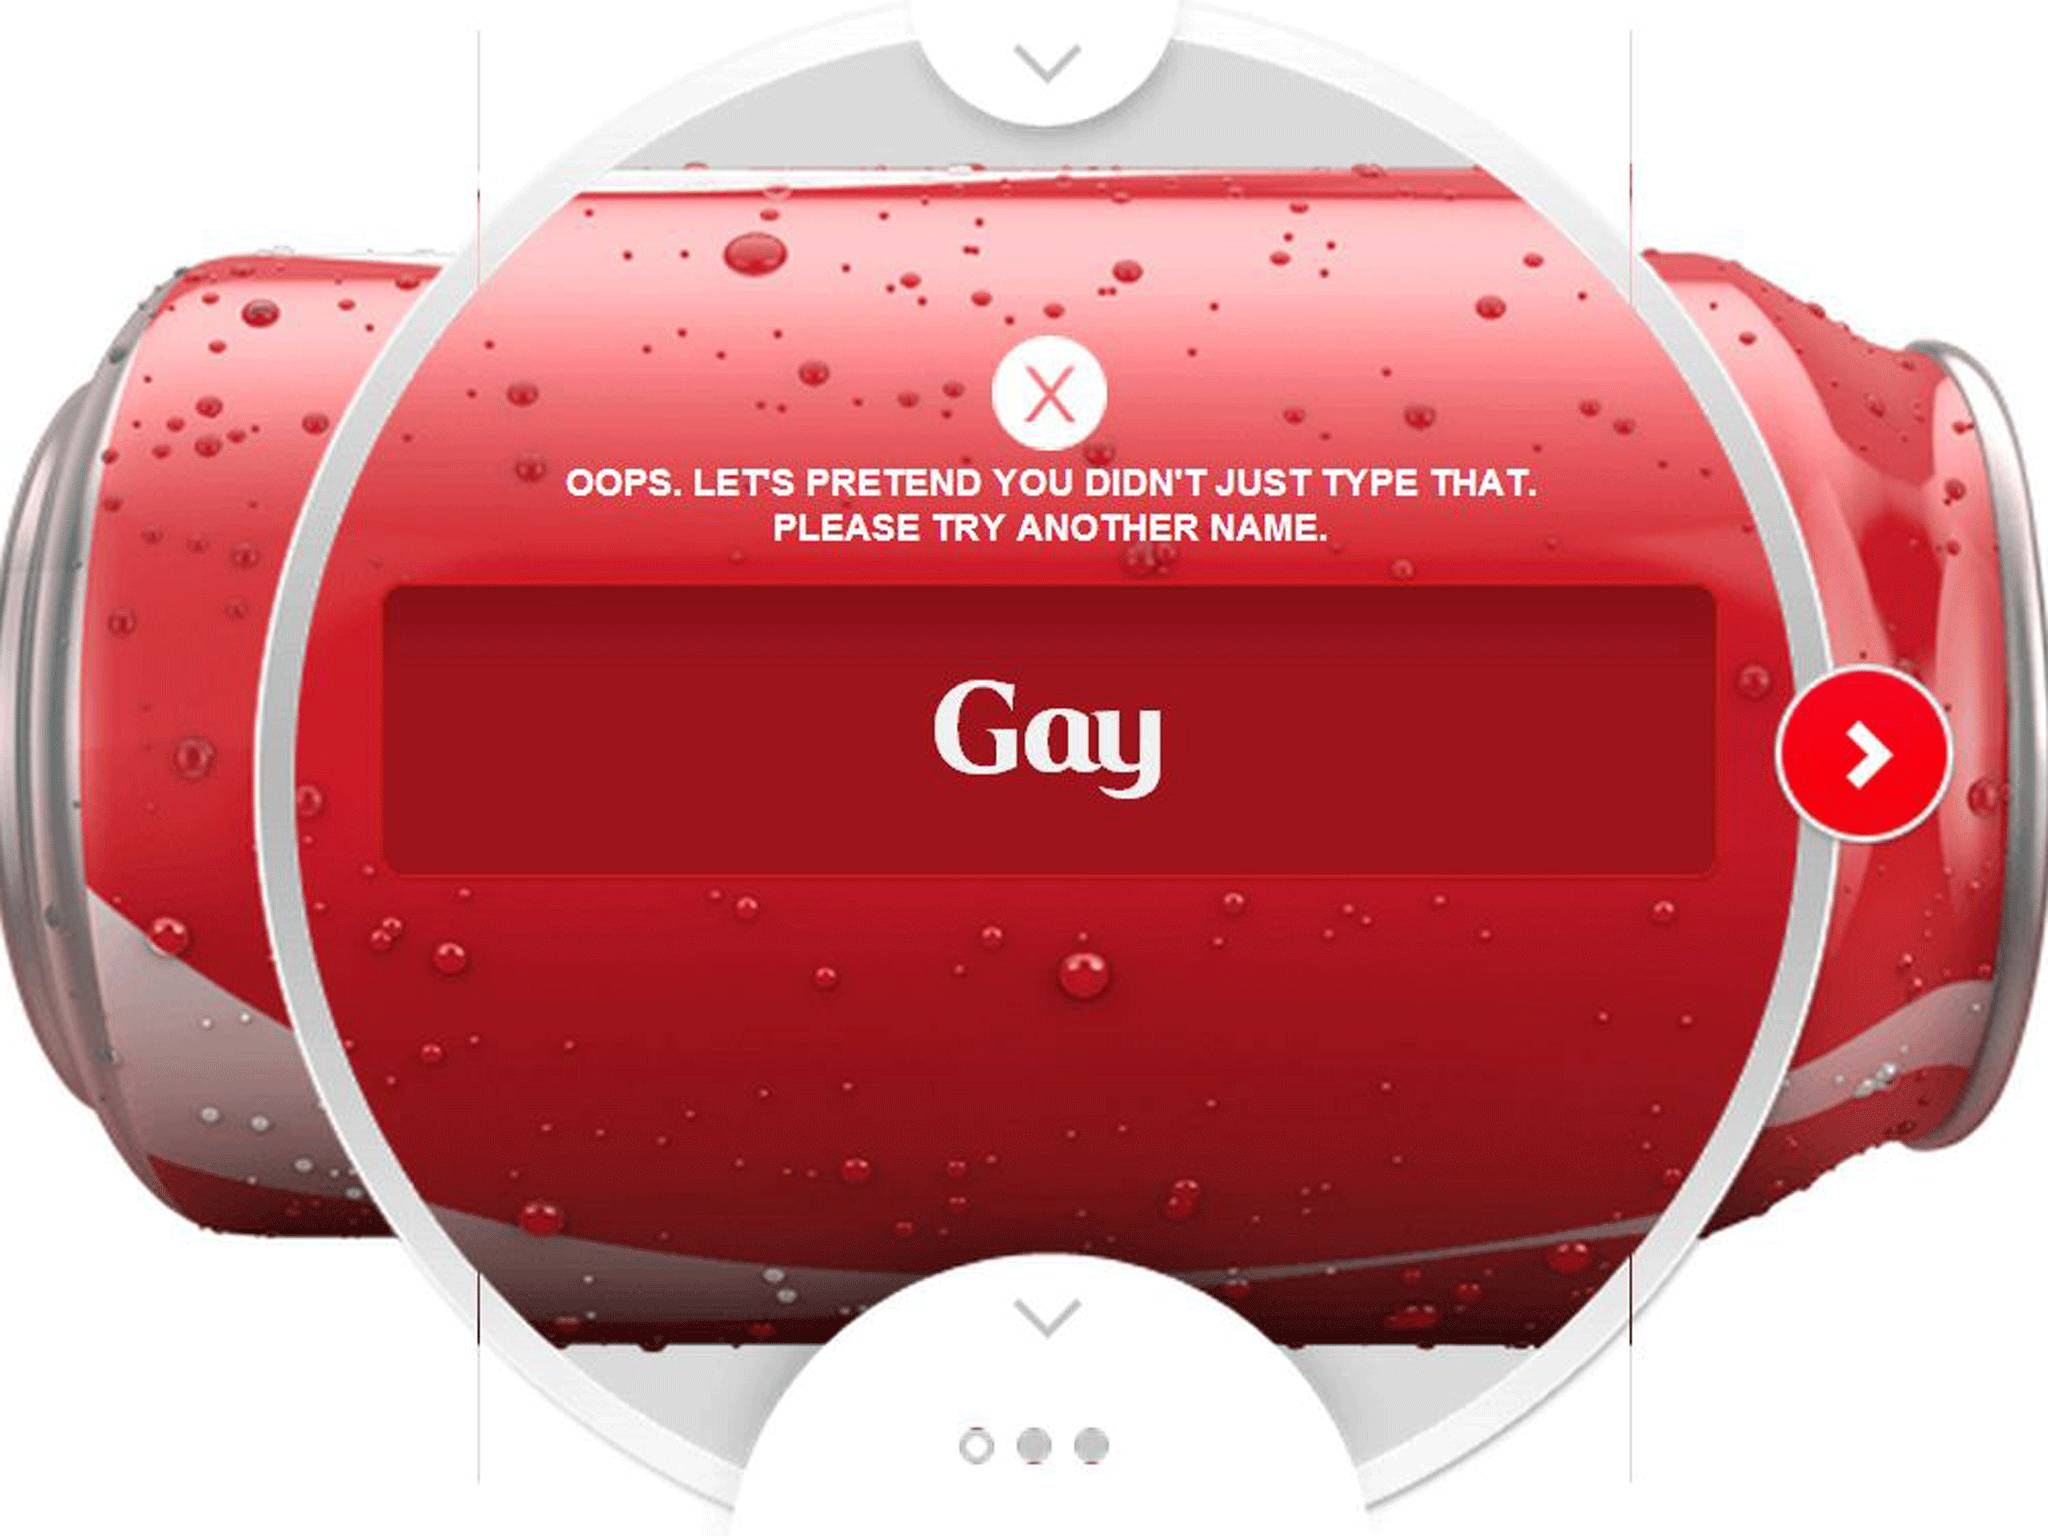 Sochi Olympics sponsor Coca-Cola wants to share a Coke, but not with gay people - World - News - The Independent